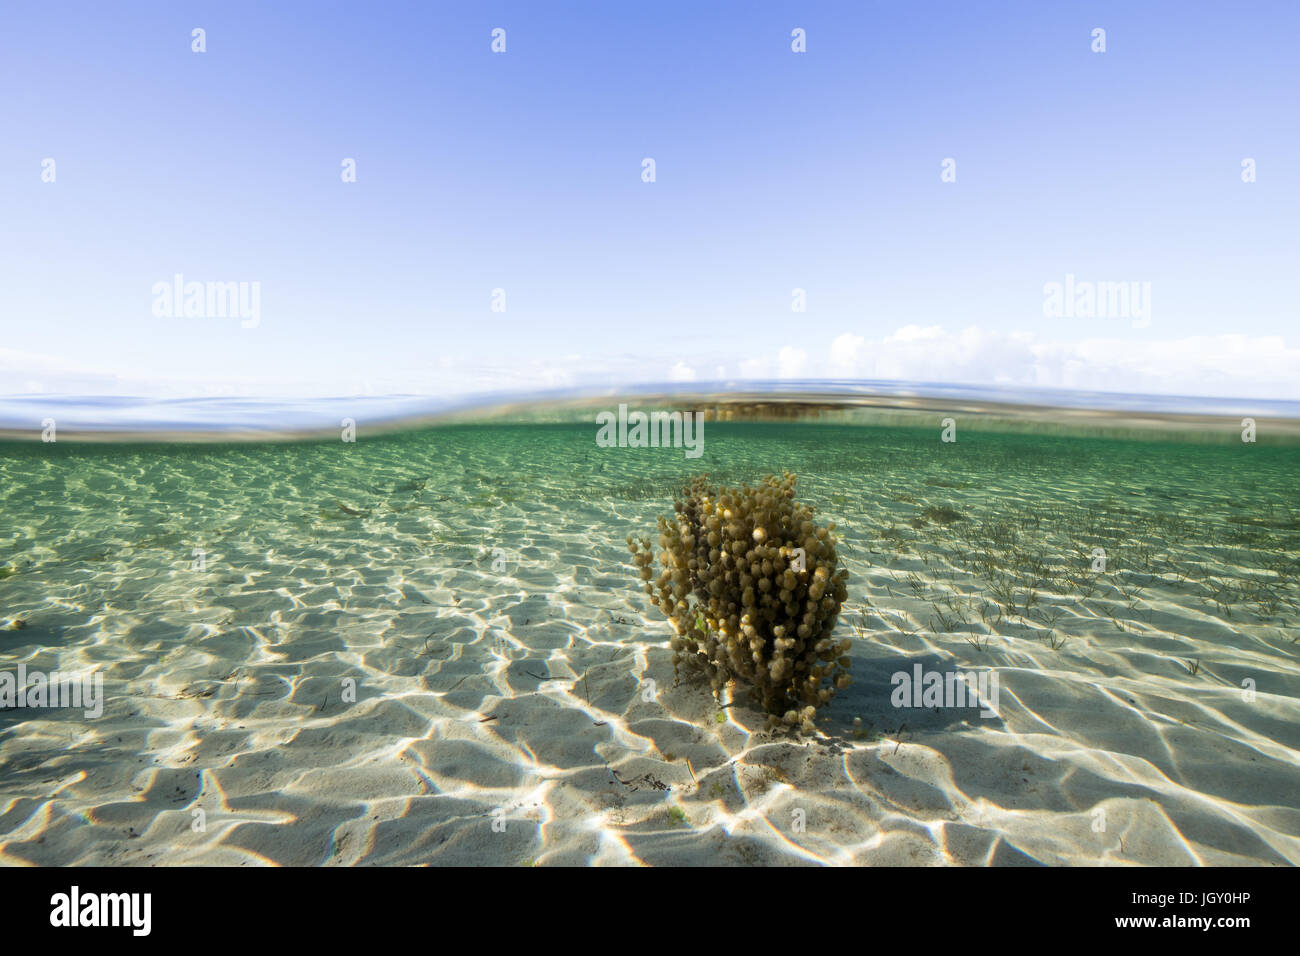 Above and under a pristine ocean environment on the Eyre Peninsula, Australia. - Stock Image